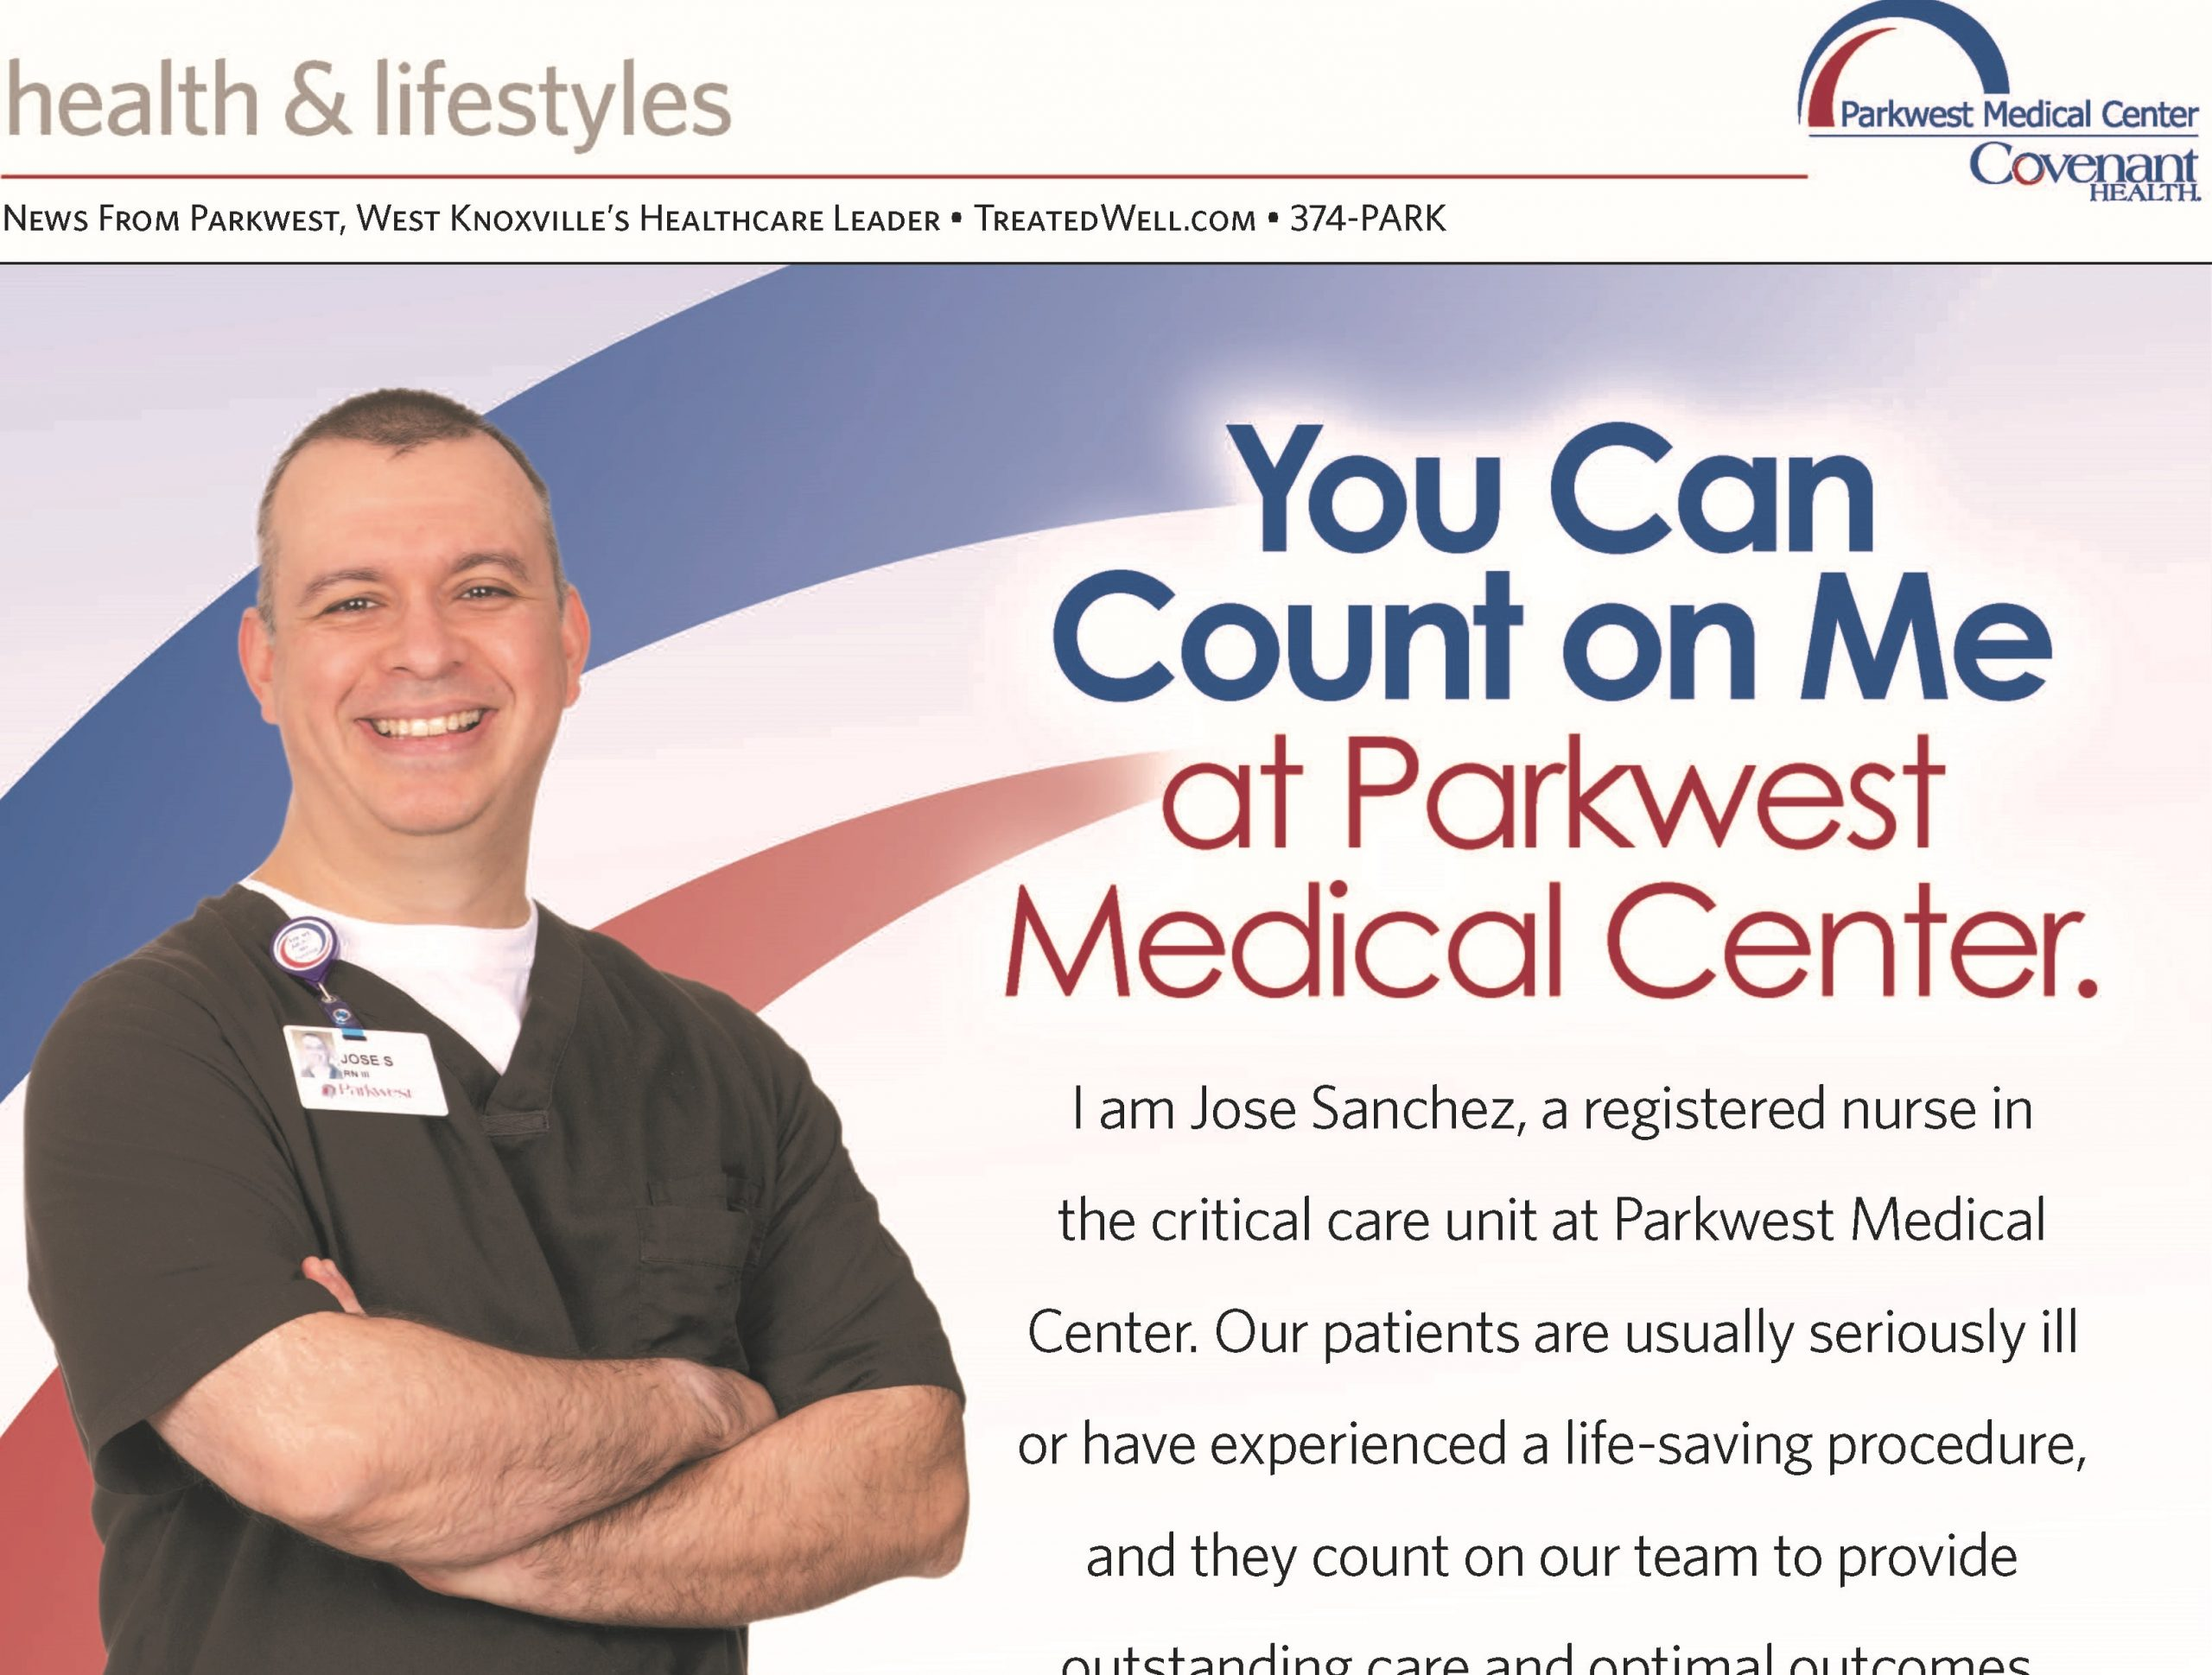 You Can Count on Jose Sanchez at Parkwest Medical Center